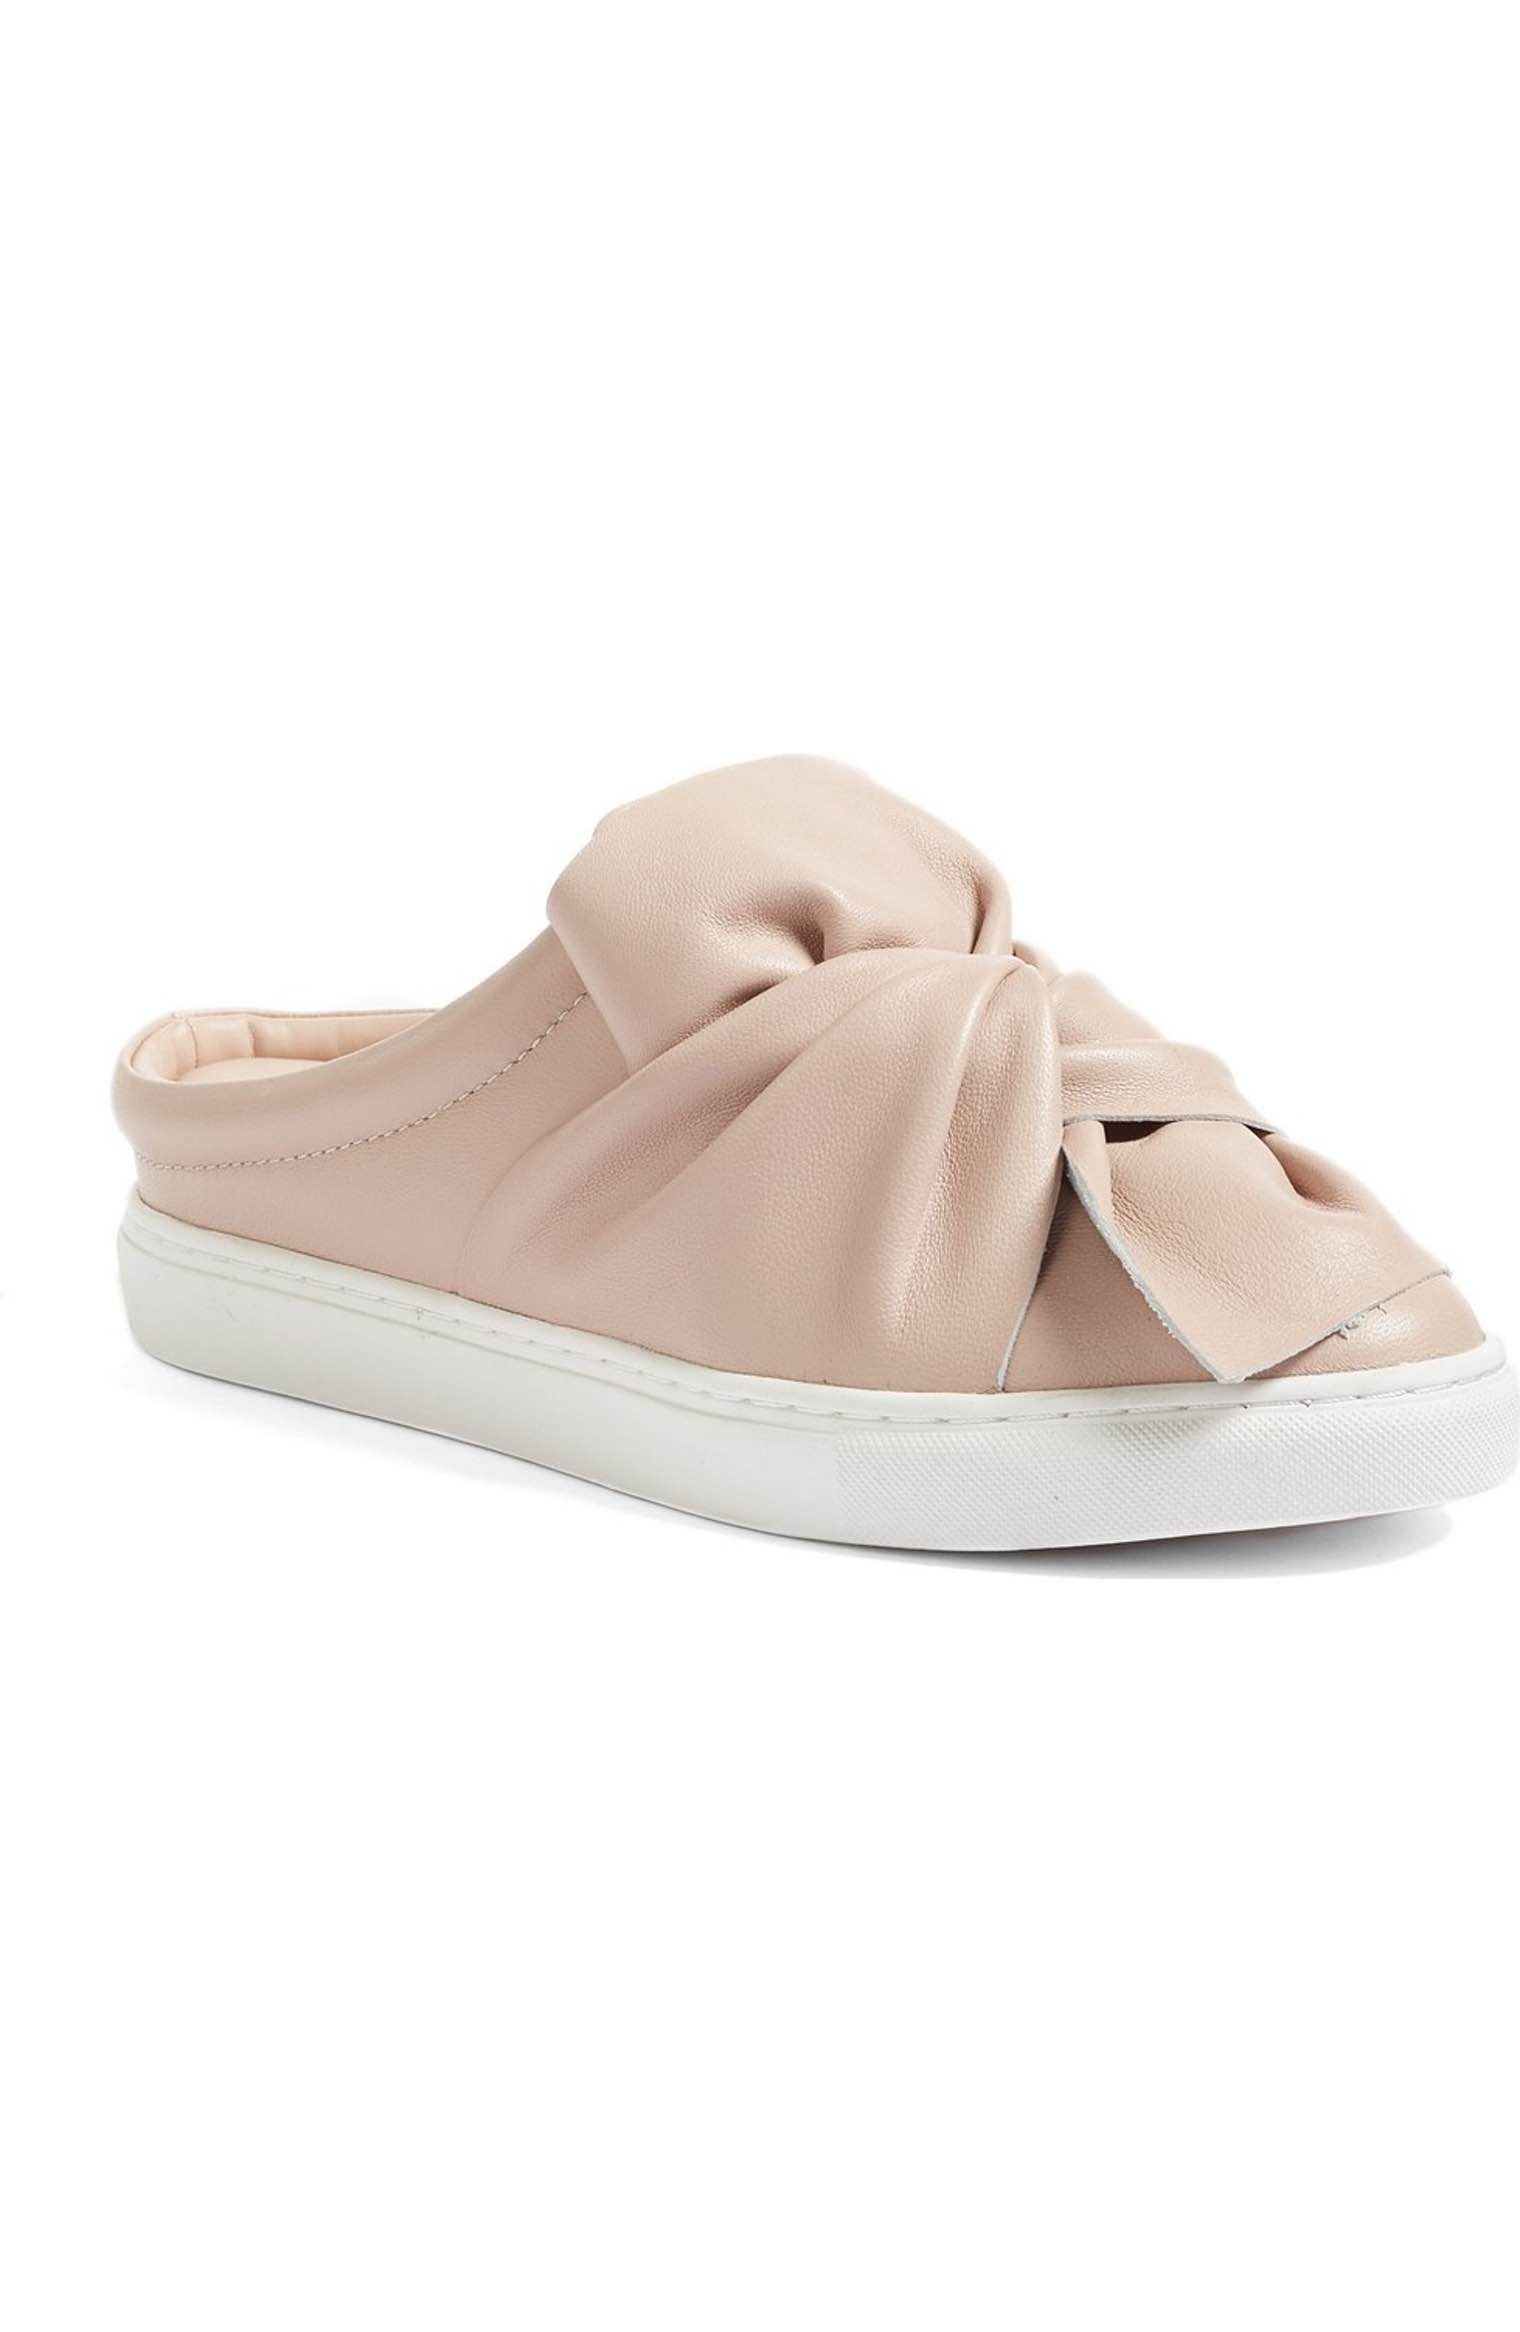 Main Image - Halogen® Manny Knotted Slip-On Sneaker (Women)